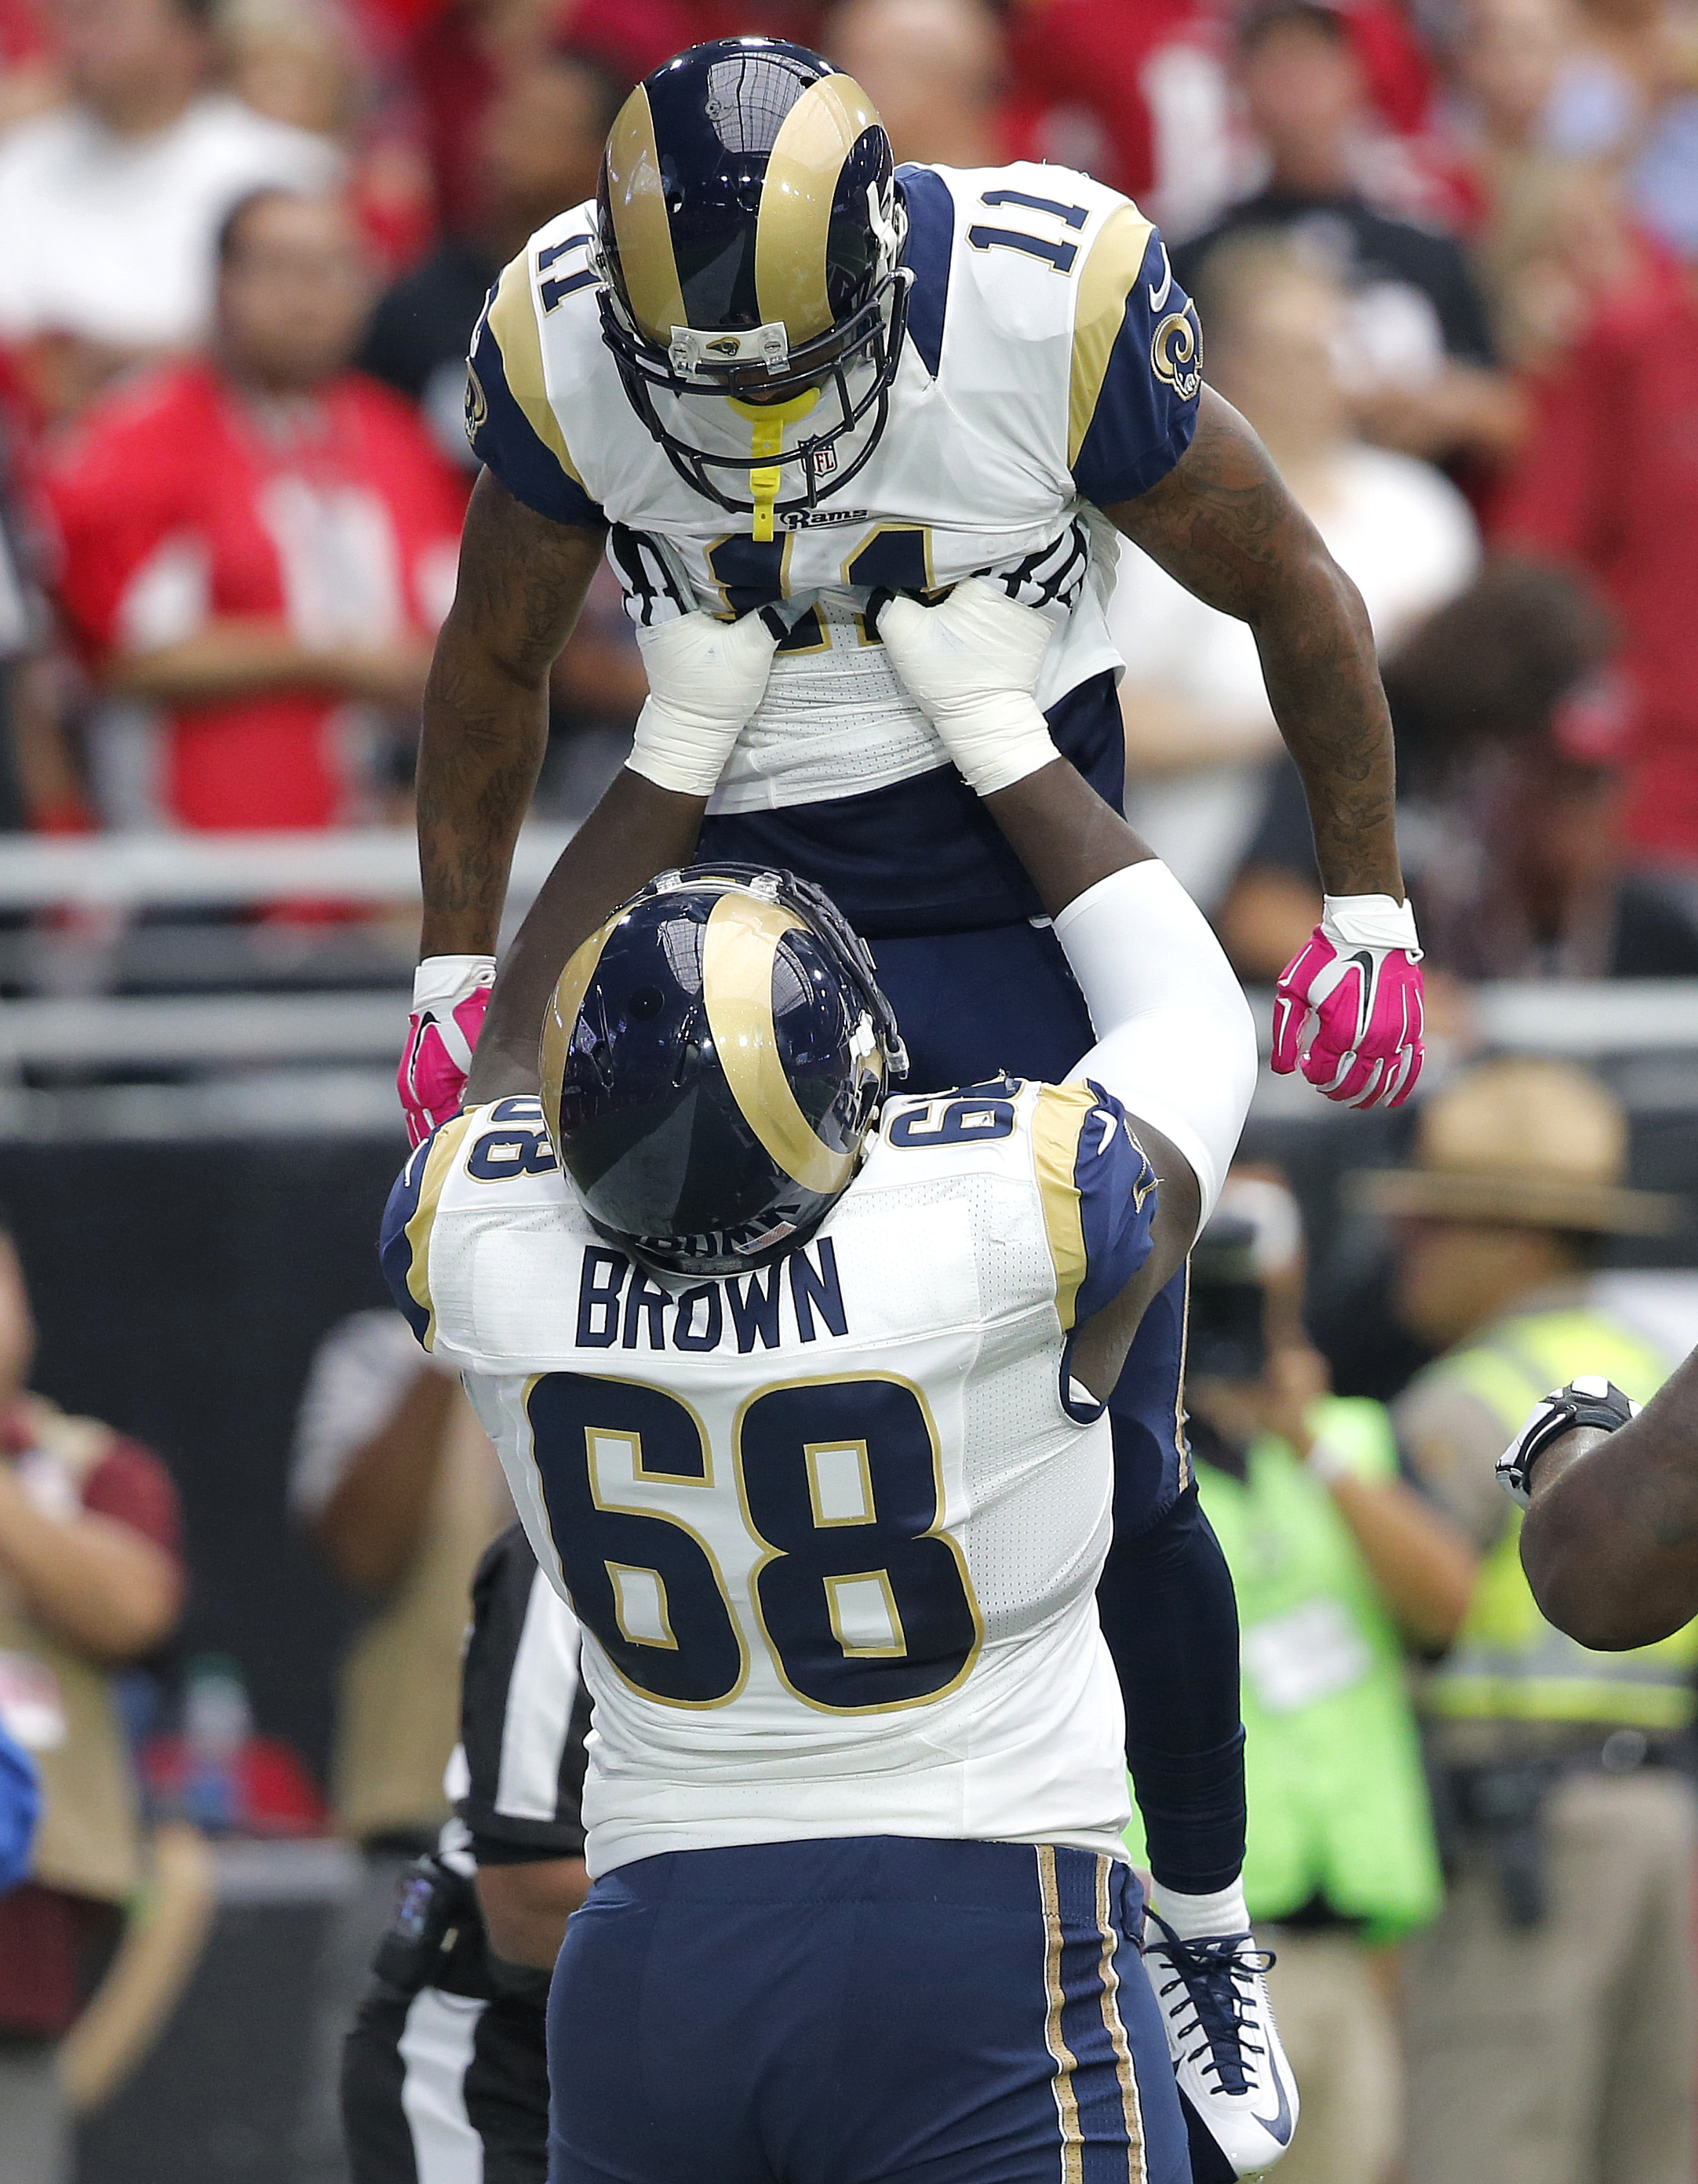 St. Louis Rams offensive guard Jamon Brown (68) lifts wide receiver Tavon Austin (11) after Austin scored a touchdown against the Arizona Cardinals during the first half of an NFL football game, Sunday, Oct. 4, 2015, in Glendale, Ariz. (AP Photo/Ross D. F